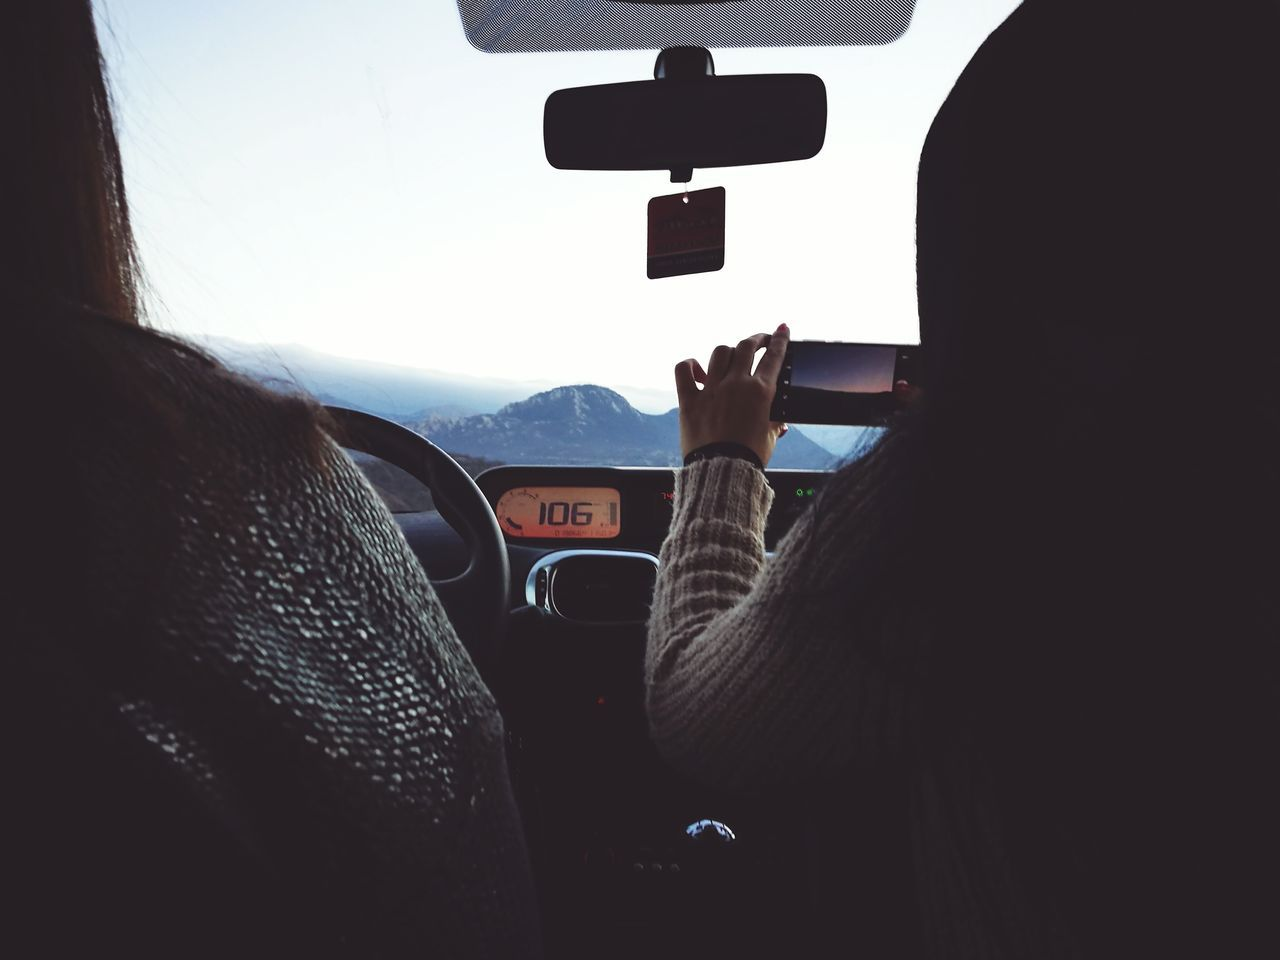 Travel between big mountains Transportation Travel Journey Driving Speedometer Vehicle Interior People Adults Only Two People Photographer In The Shot Picture In A Picture Beauty In Nature Mountains And Sky Mountain Peak EyeEm Best Shots Weekend